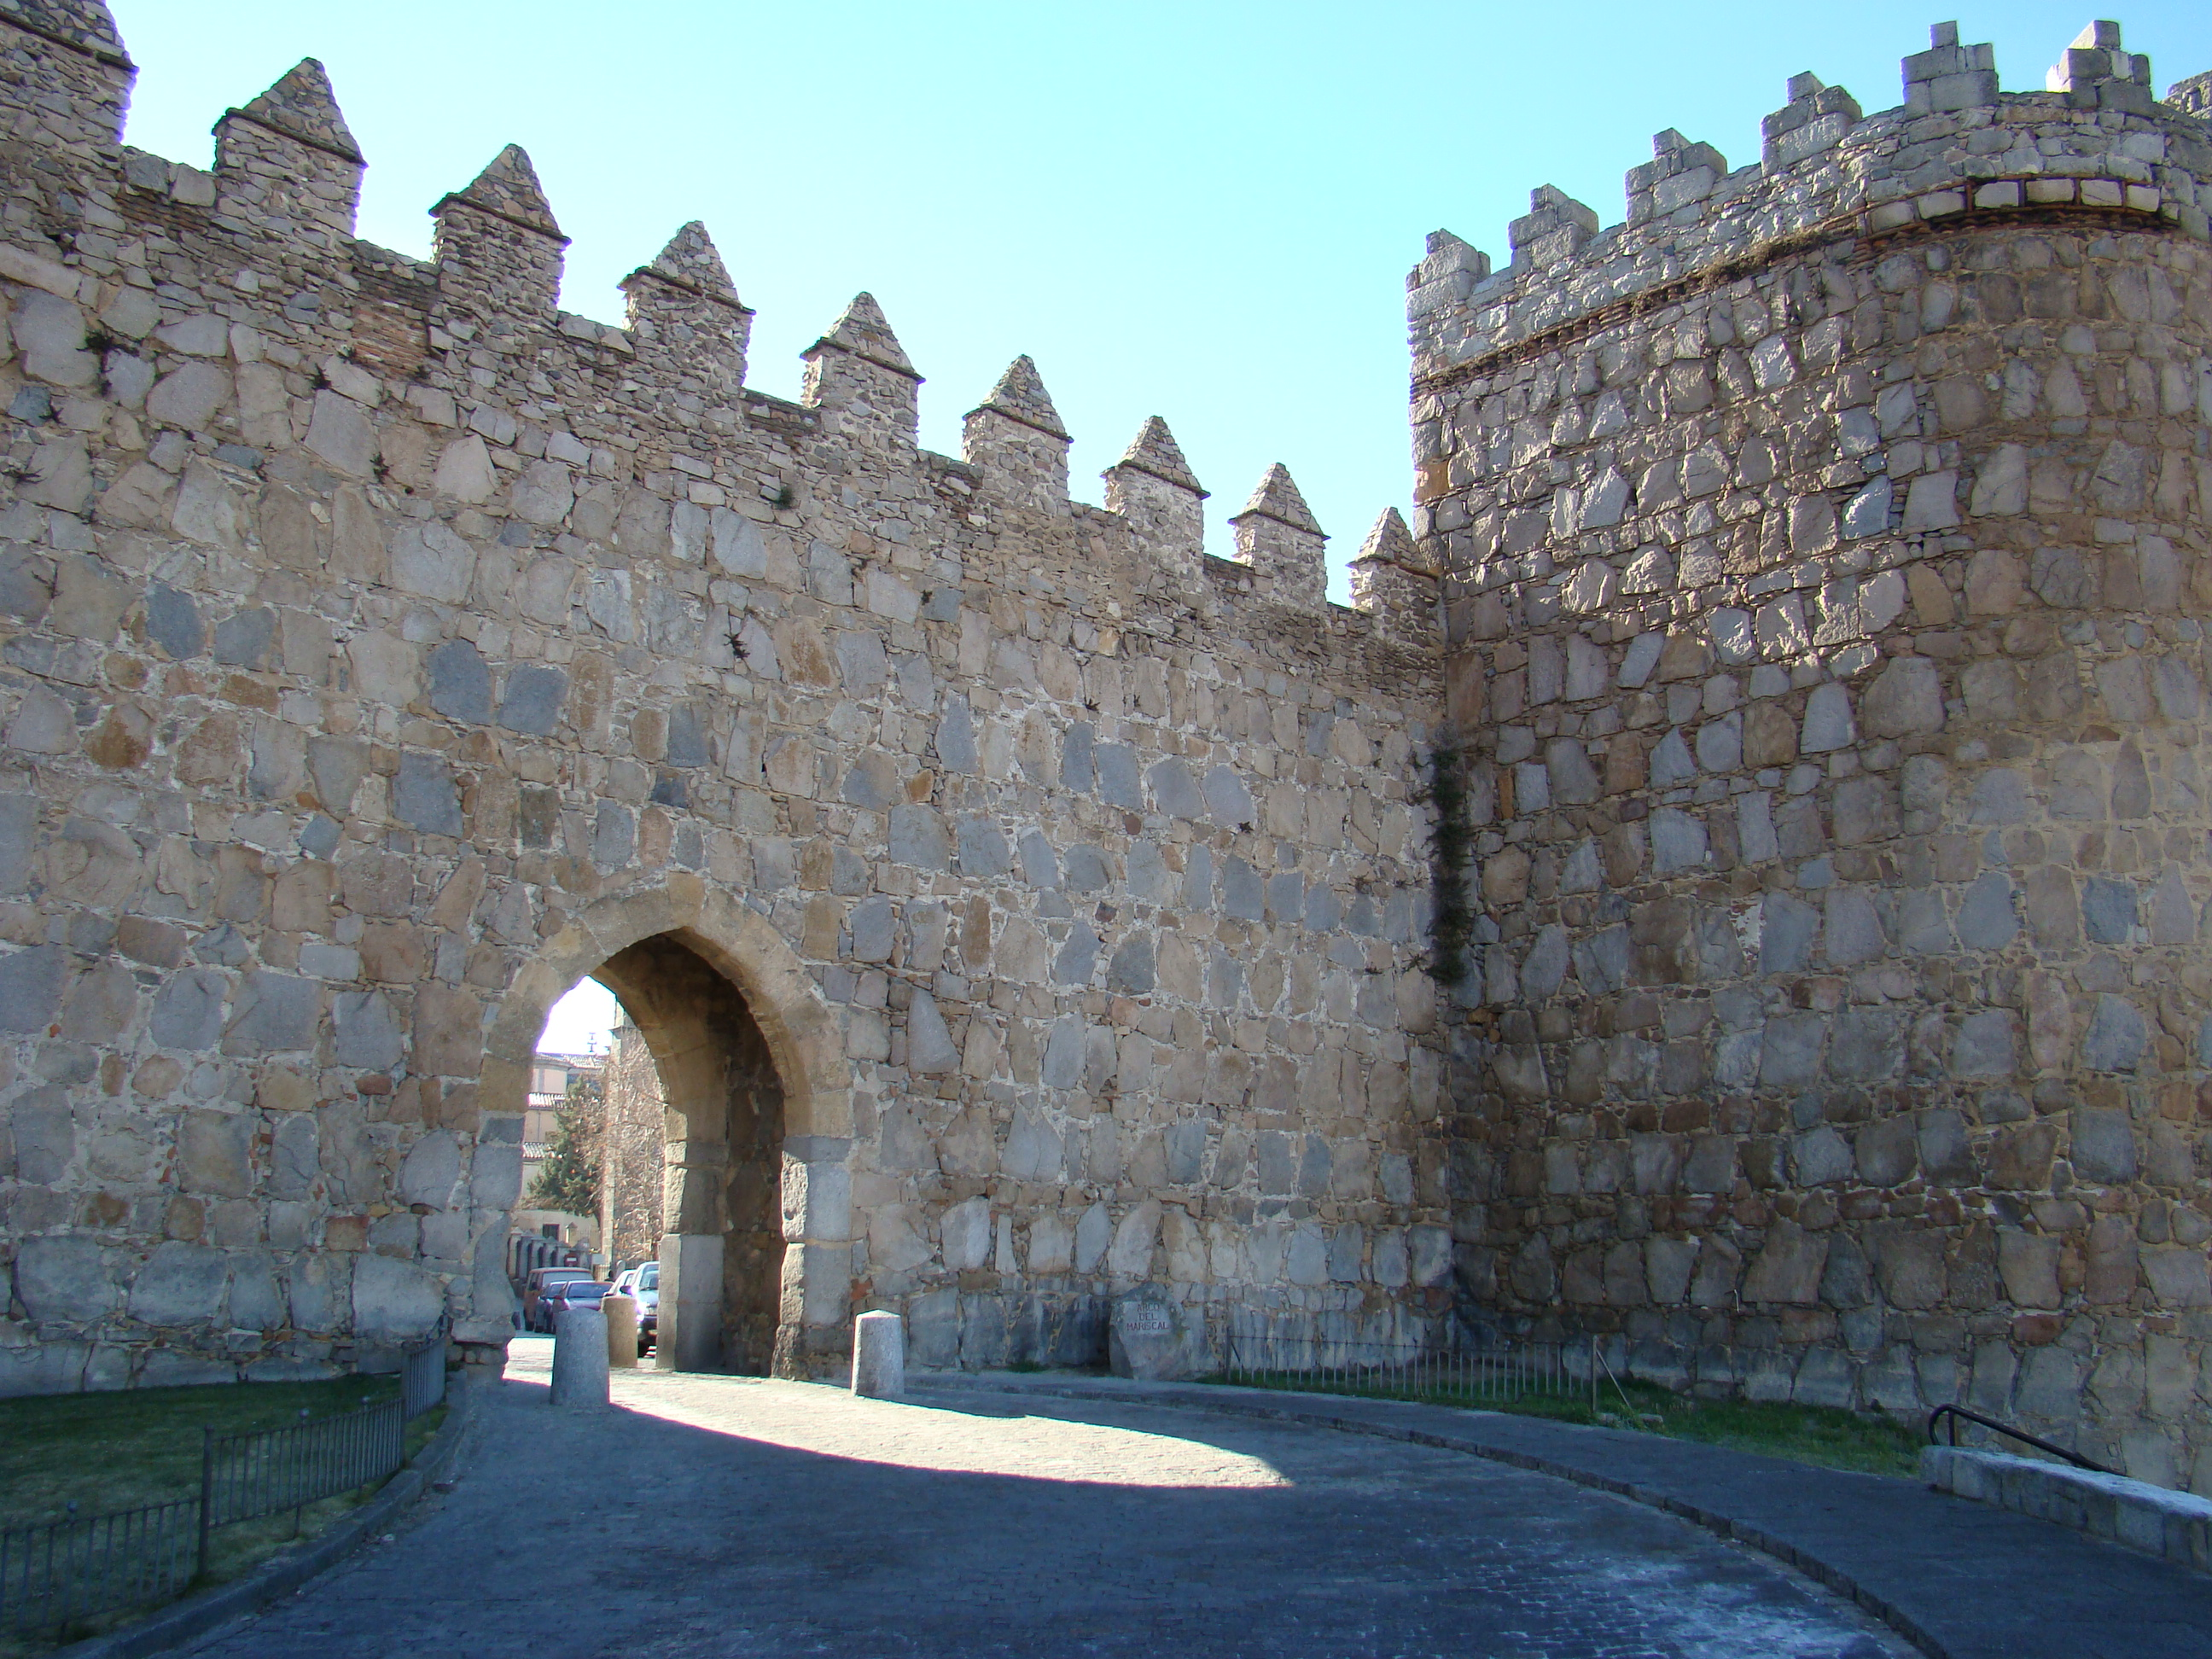 http://upload.wikimedia.org/wikipedia/commons/4/4d/Avila_murallas_romanicas_02_ni.JPG